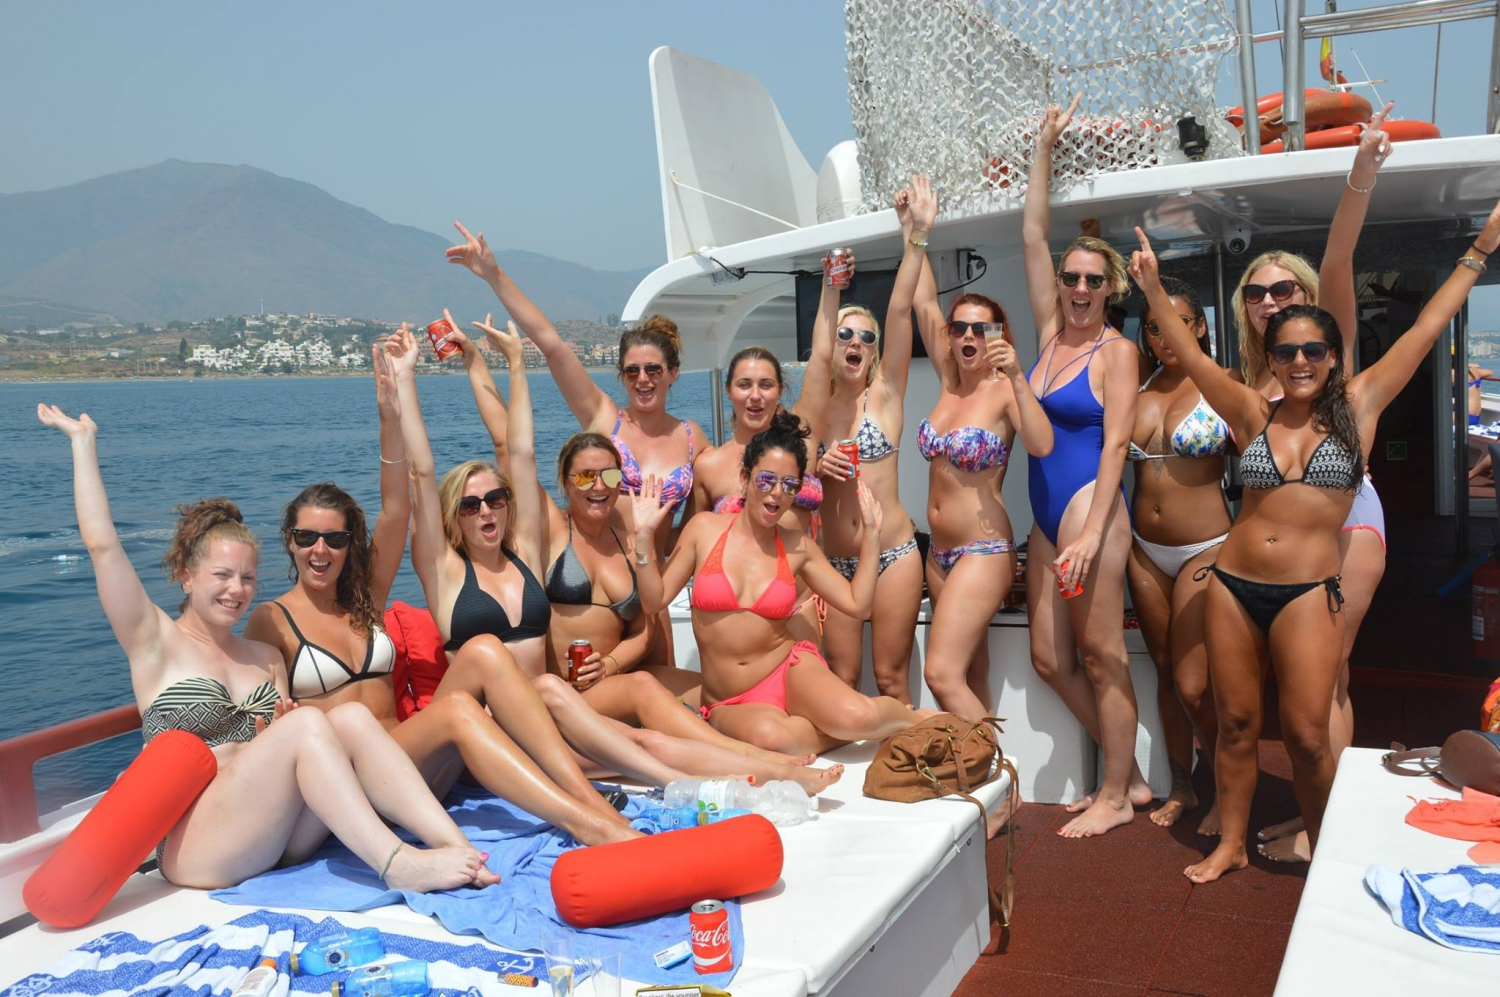 Top 5 For Stag & Hens in Marbella